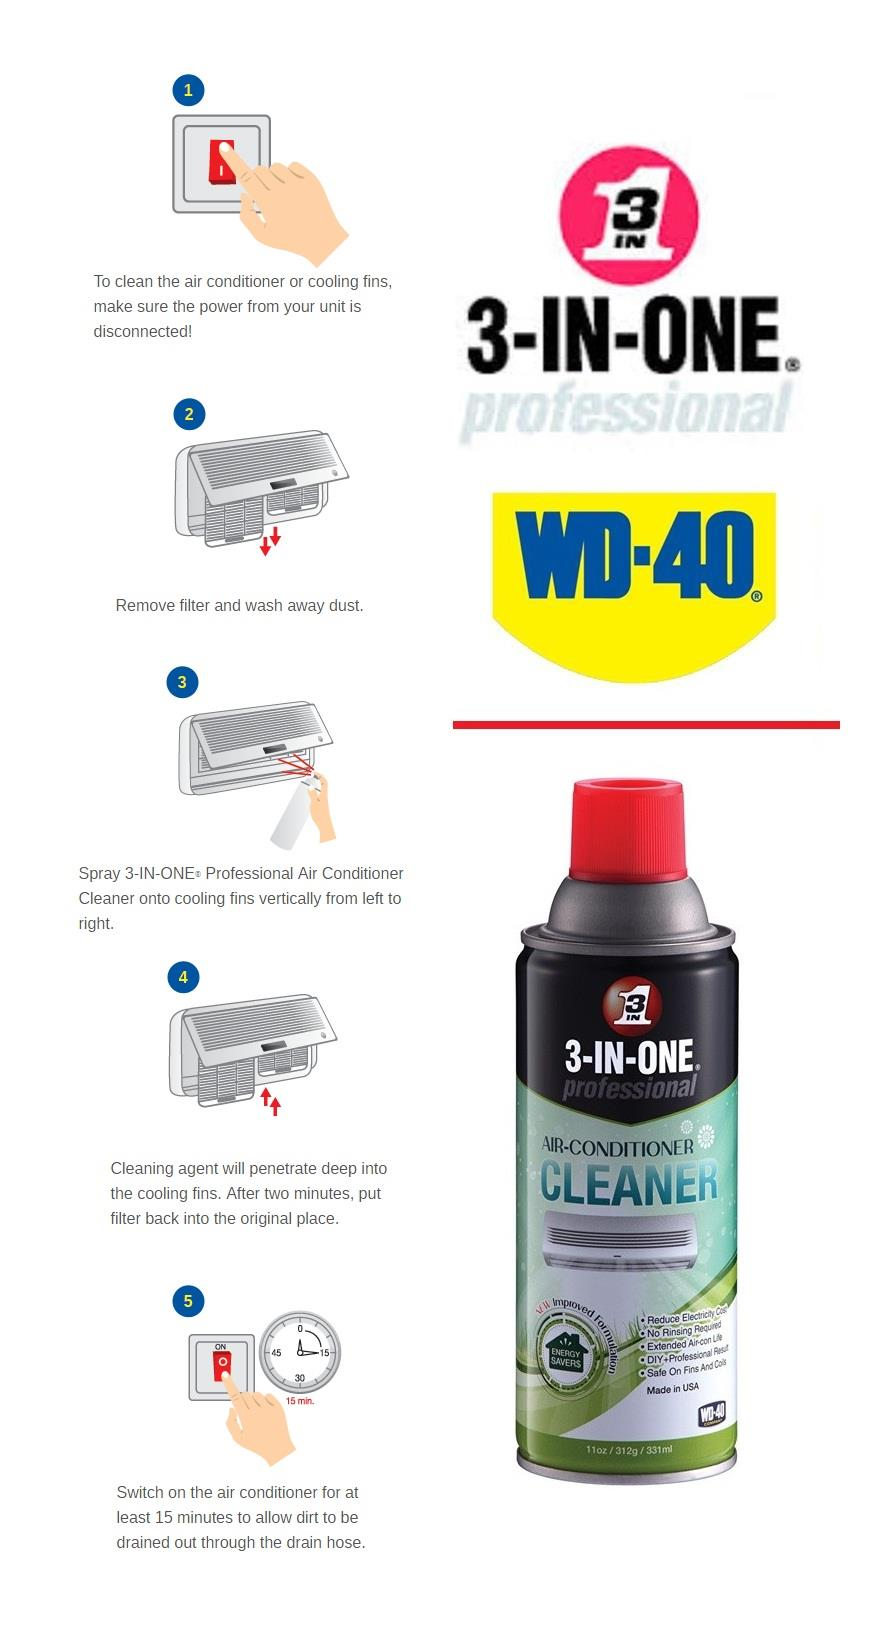 WD40 3-in-1 Professional Air-Conditioner Cleaner